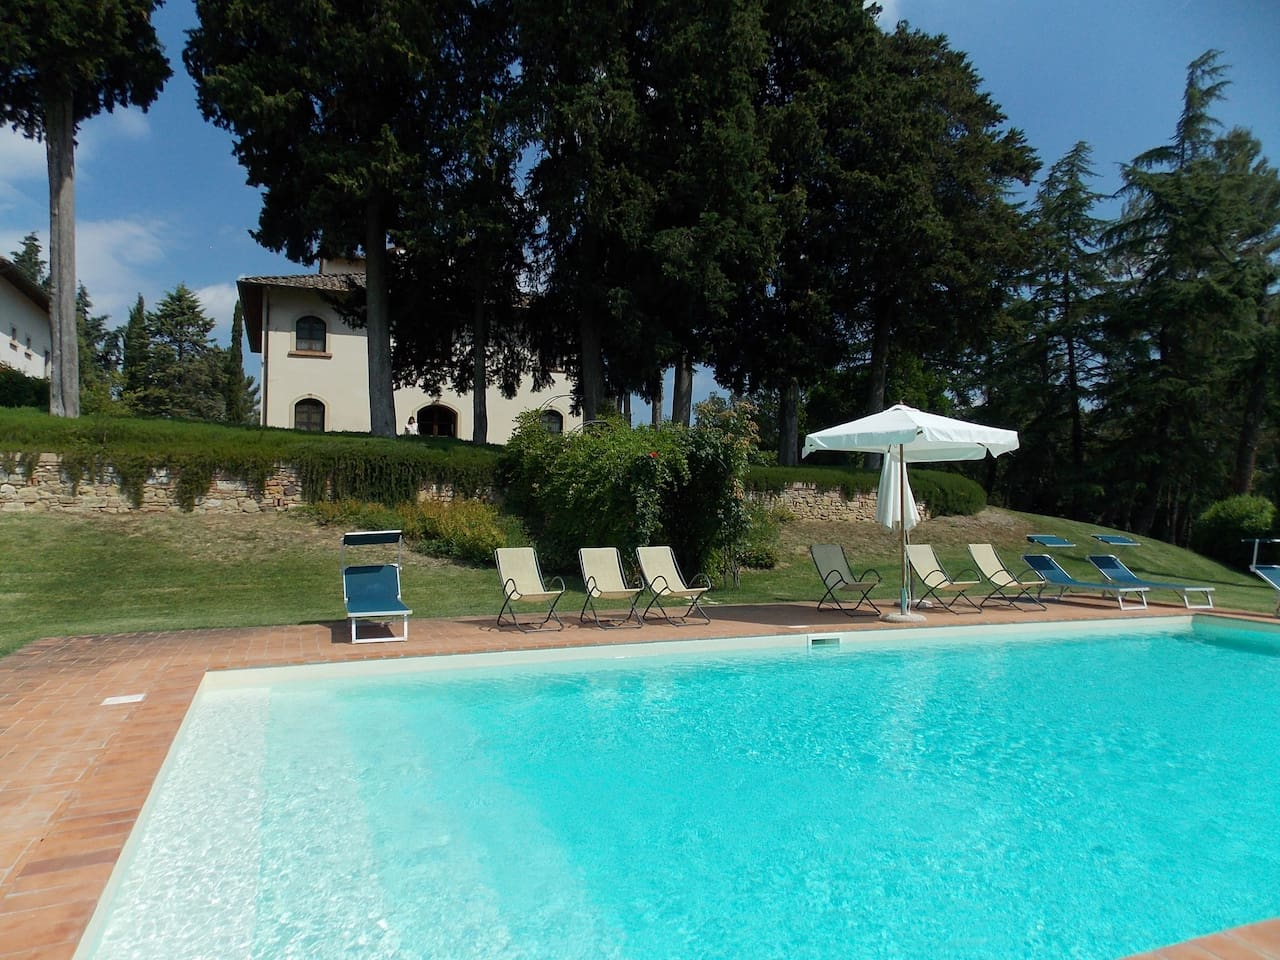 Villa Vernaccia exterior with private swimming pool